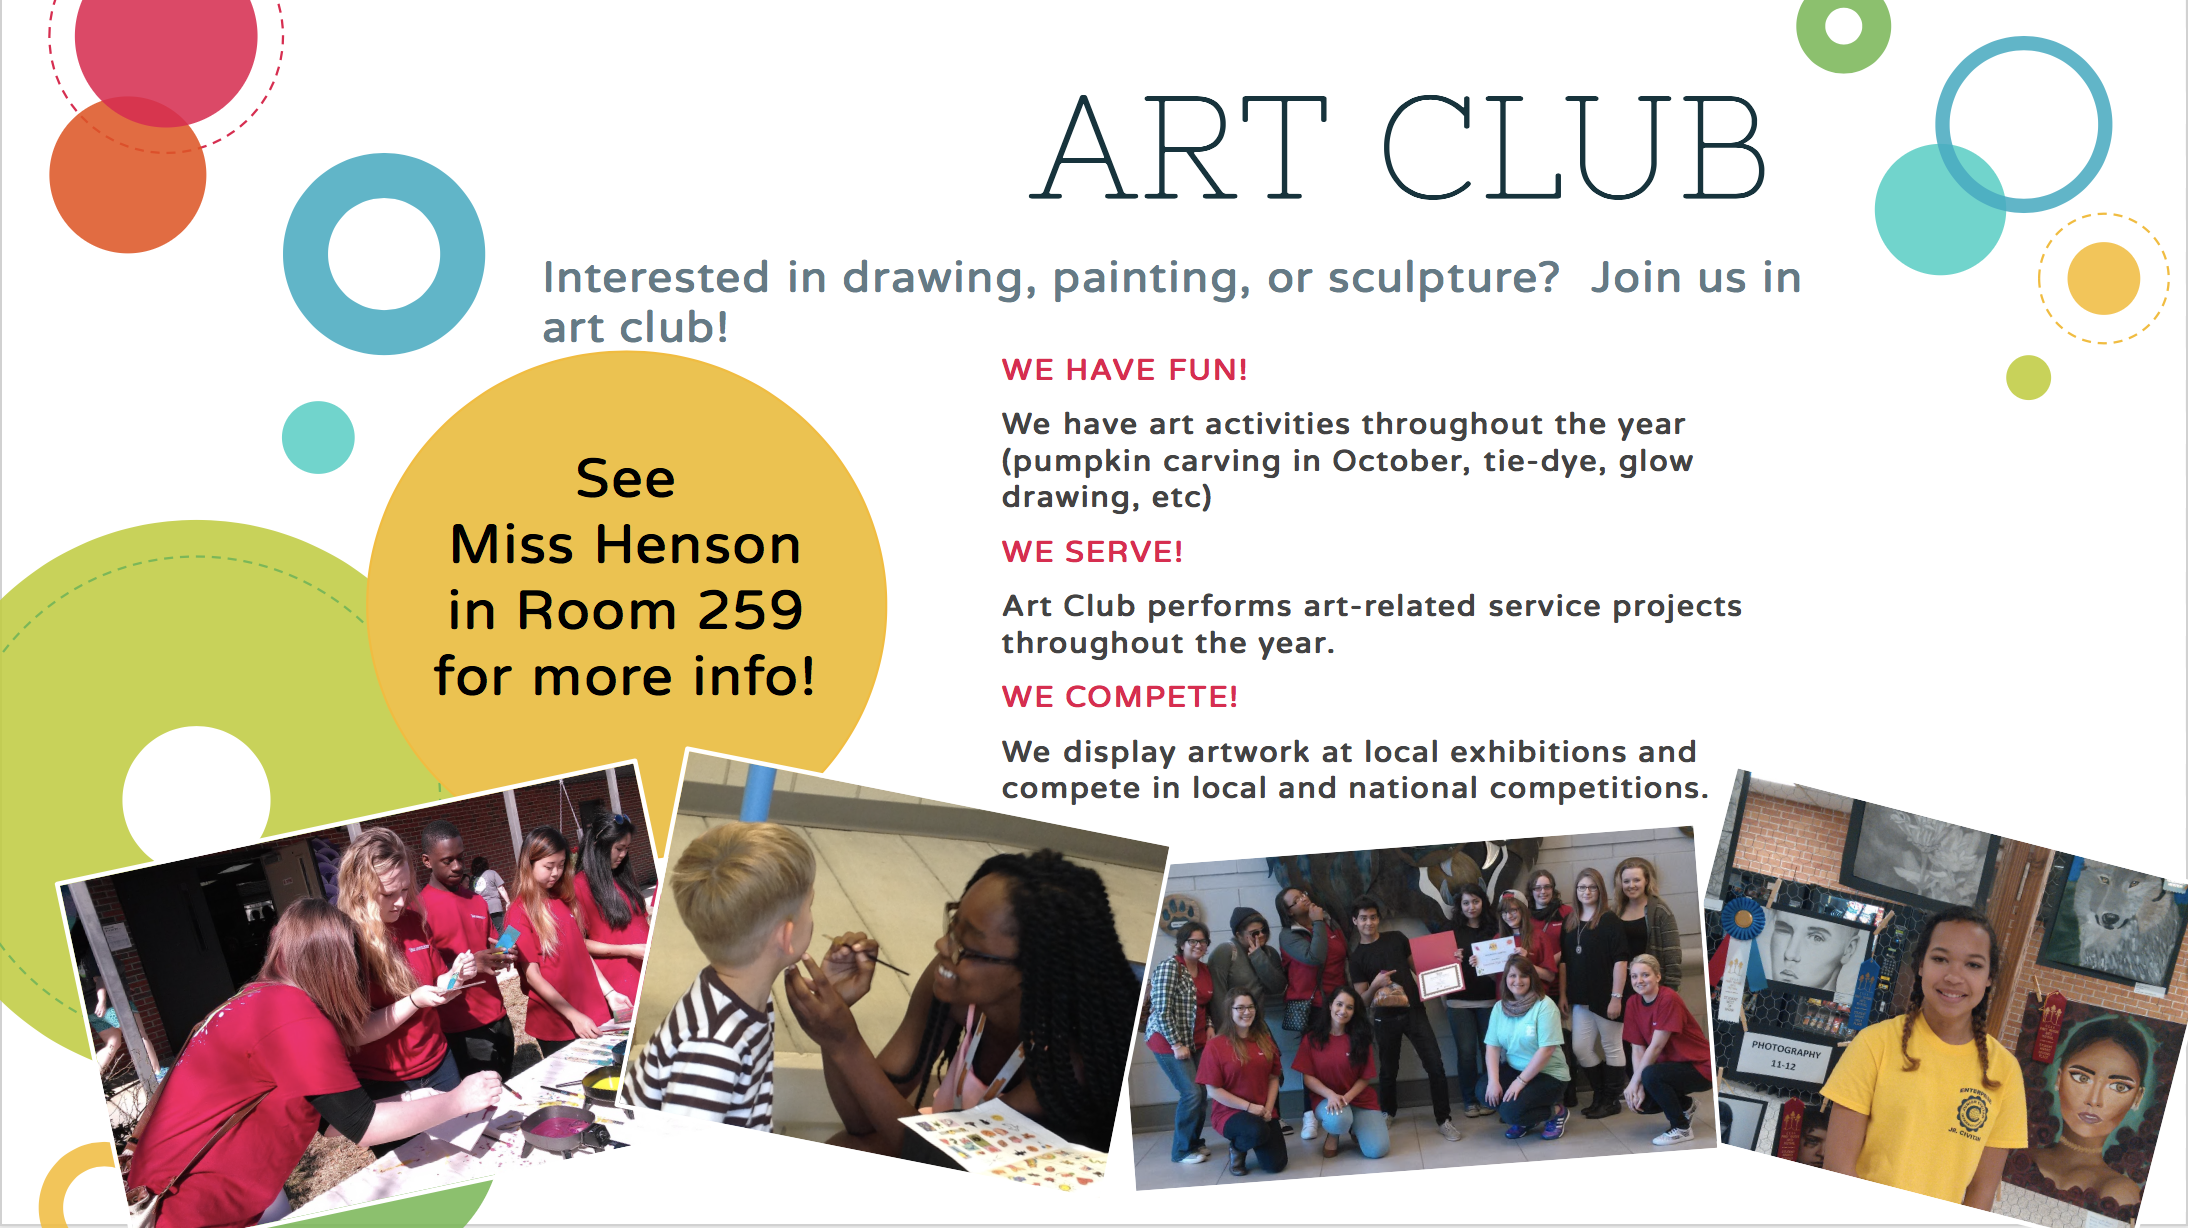 Art Club - Interested in drawing, painting, or sculpture? Join us in art club!